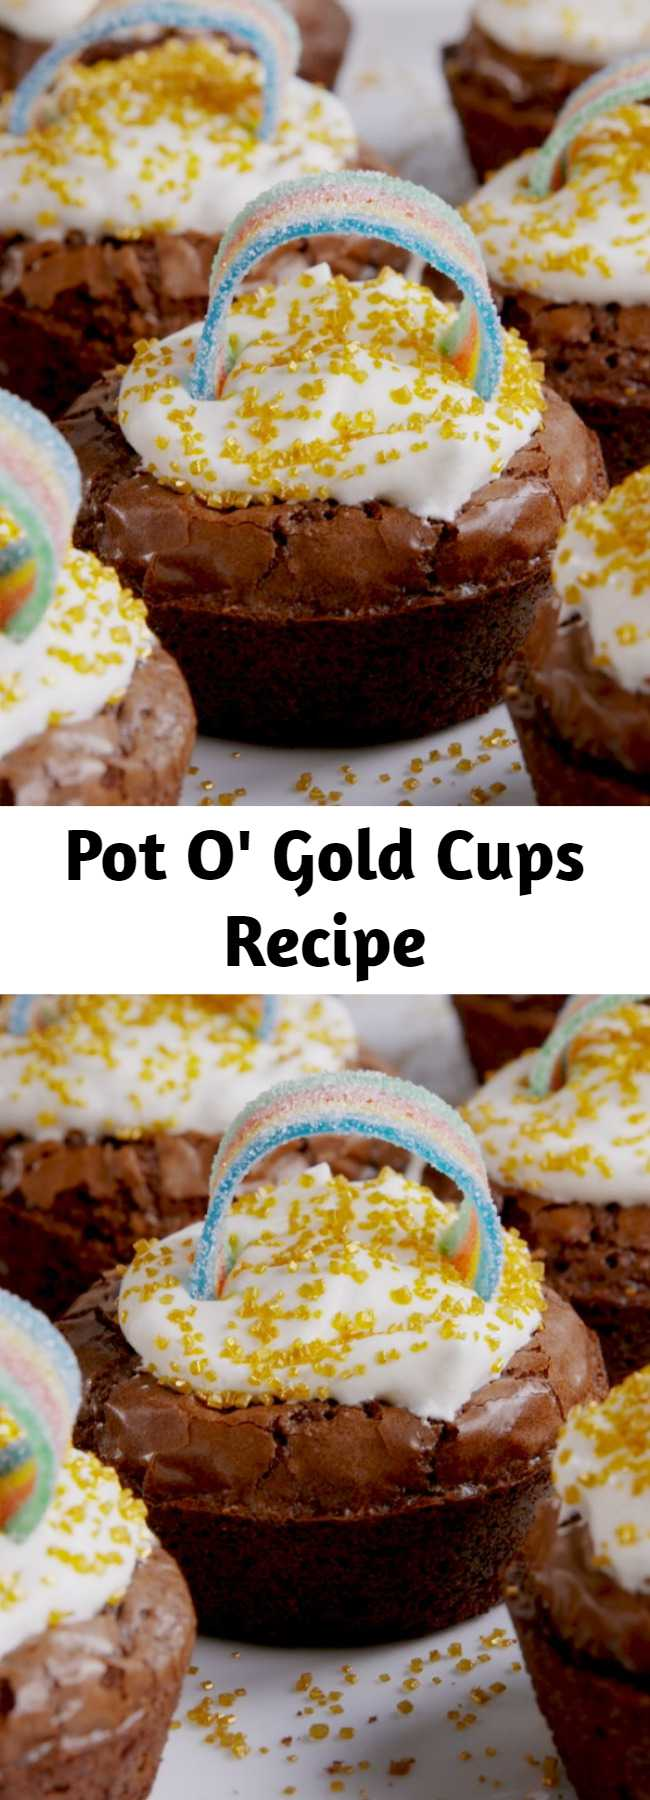 Pot O' Gold Cups Recipe - Pop these little brownies in your mouth for good luck.